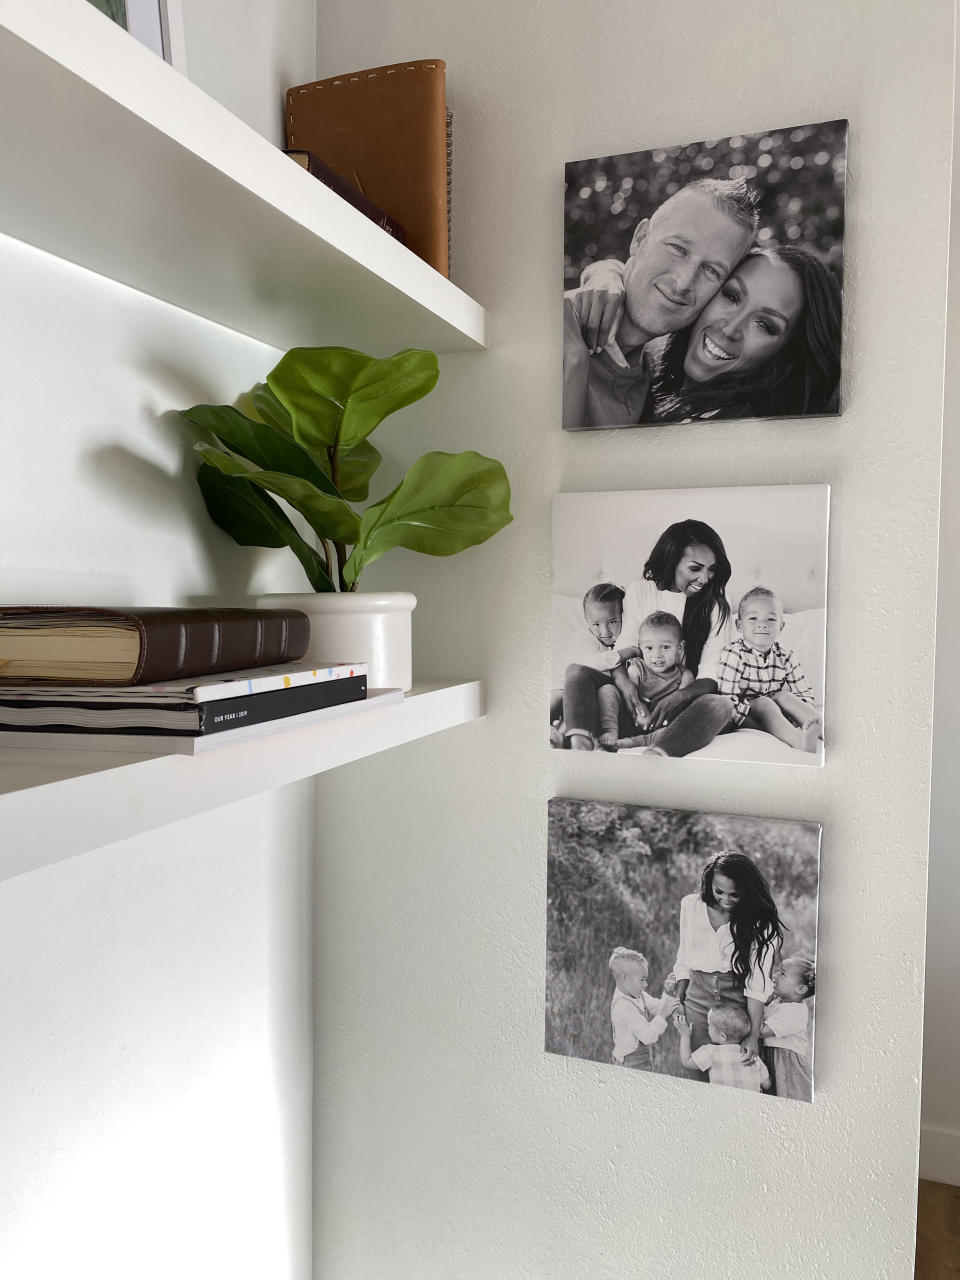 This photo provided by Chatbooks shows their photo wall tiles. Chatbooks lets you connect your Instagram or camera roll to create beautiful photo books, prints, cards – or these lovely wall tiles. Your color or b&w images are printed on square canvas frames equipped with moveable adhesive backing, perfect for renters and owners. (Chatbooks via AP)